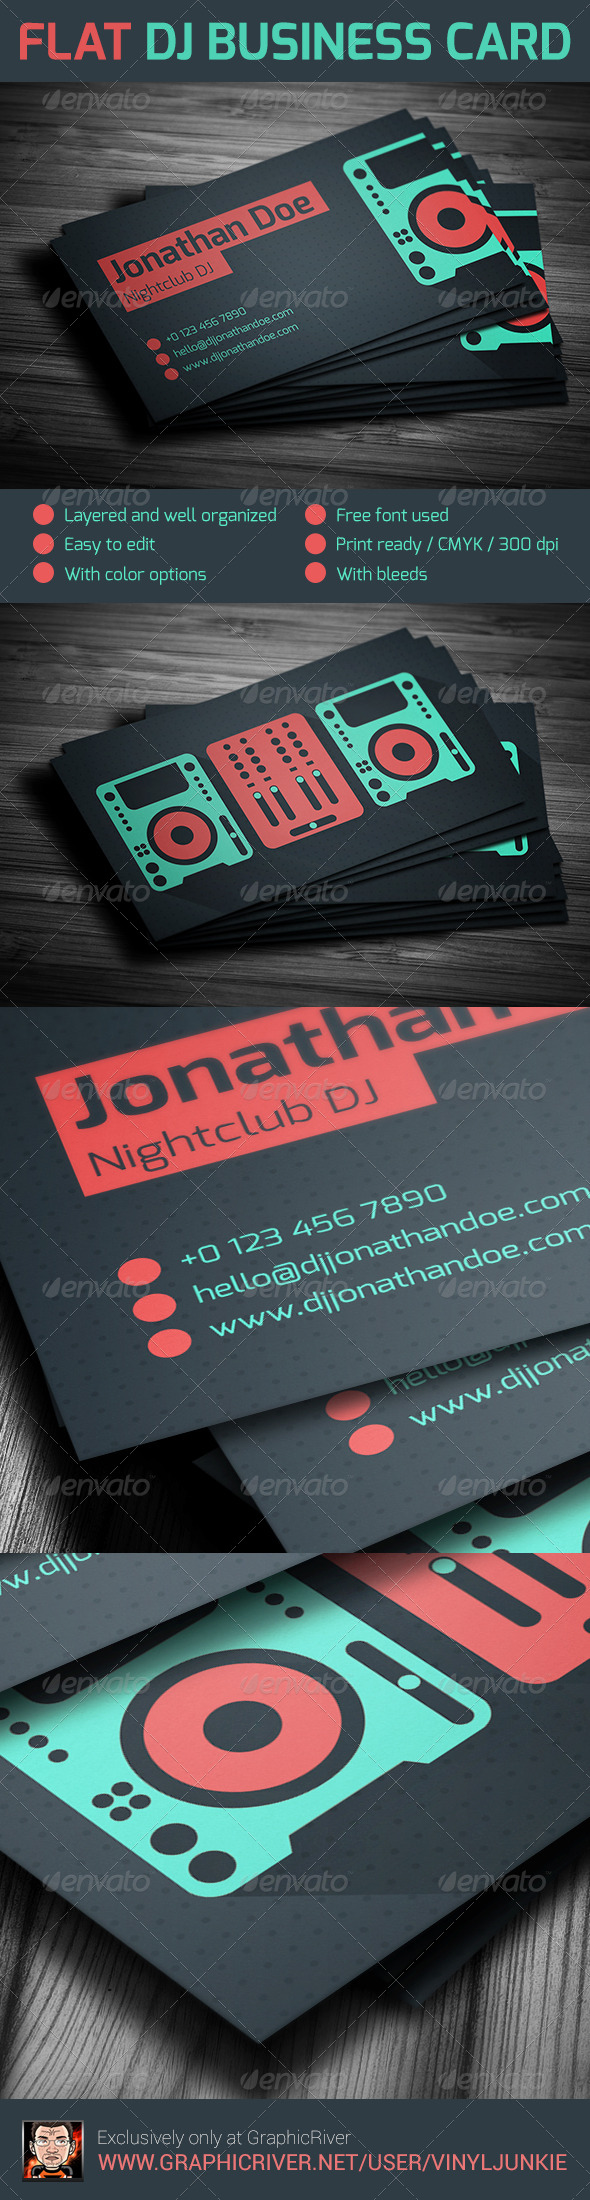 Flat DJ Business Card By Vinyljunkie GraphicRiver - Free dj business card template